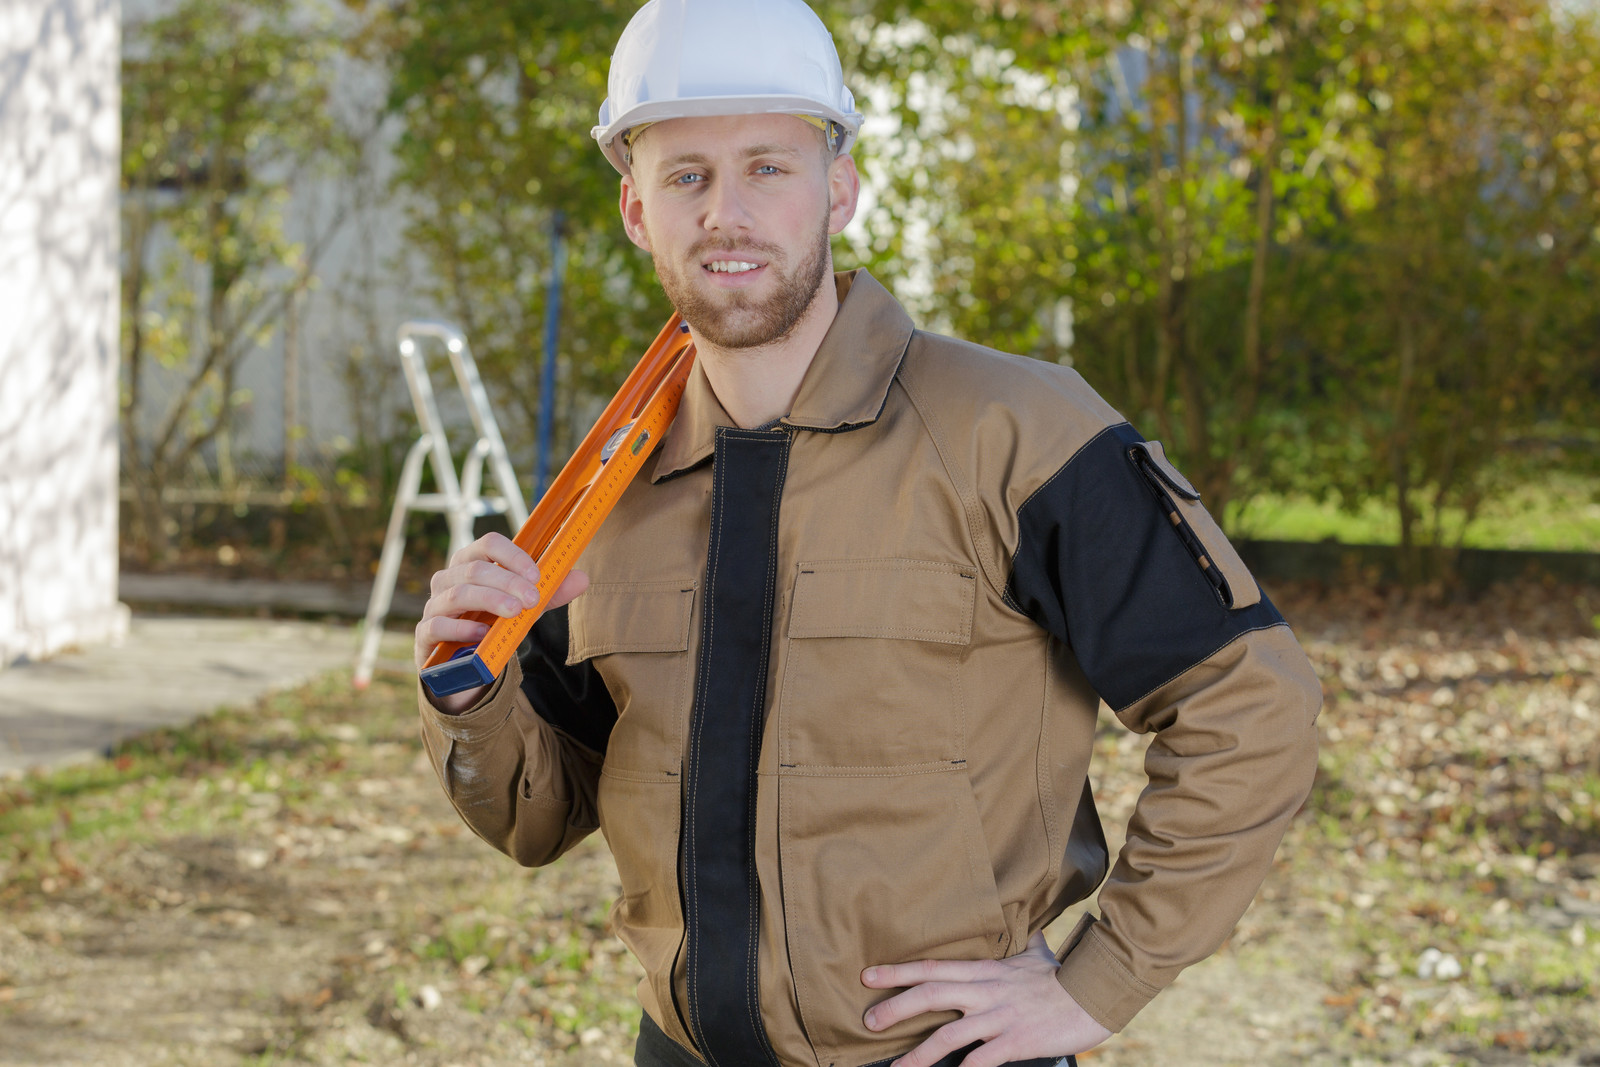 Friendly smiling home inspector holding a level standing in a yard with shrubs and buildings in the background